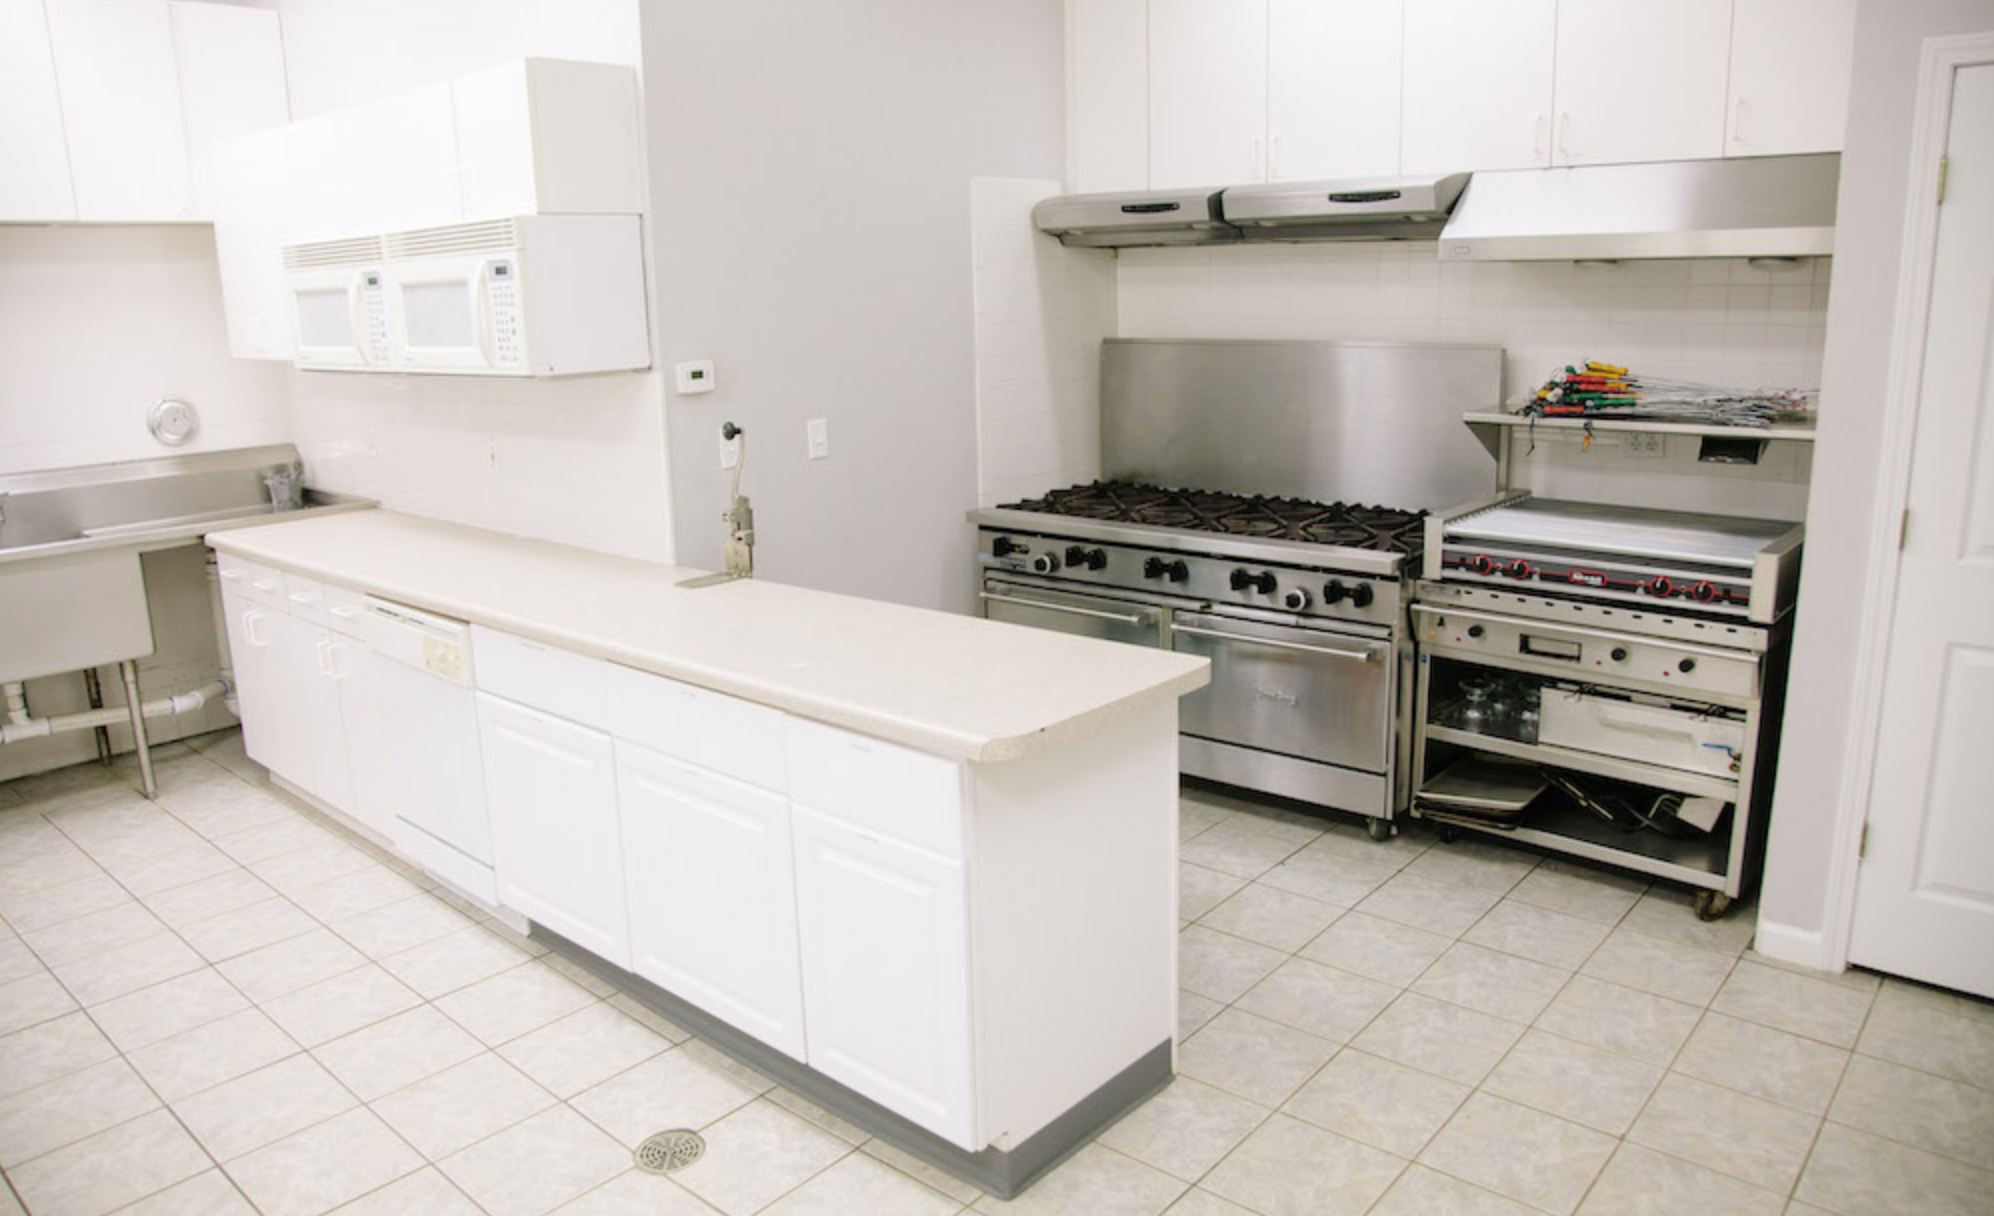 Industrial Kitchen - Inside of the pavilion you will find an industrial kitchen well equipped for large groups. With the pavilion rental, your church will have access to a commercial oven, triple basin sink, refrigeration, grills, restrooms and showers.